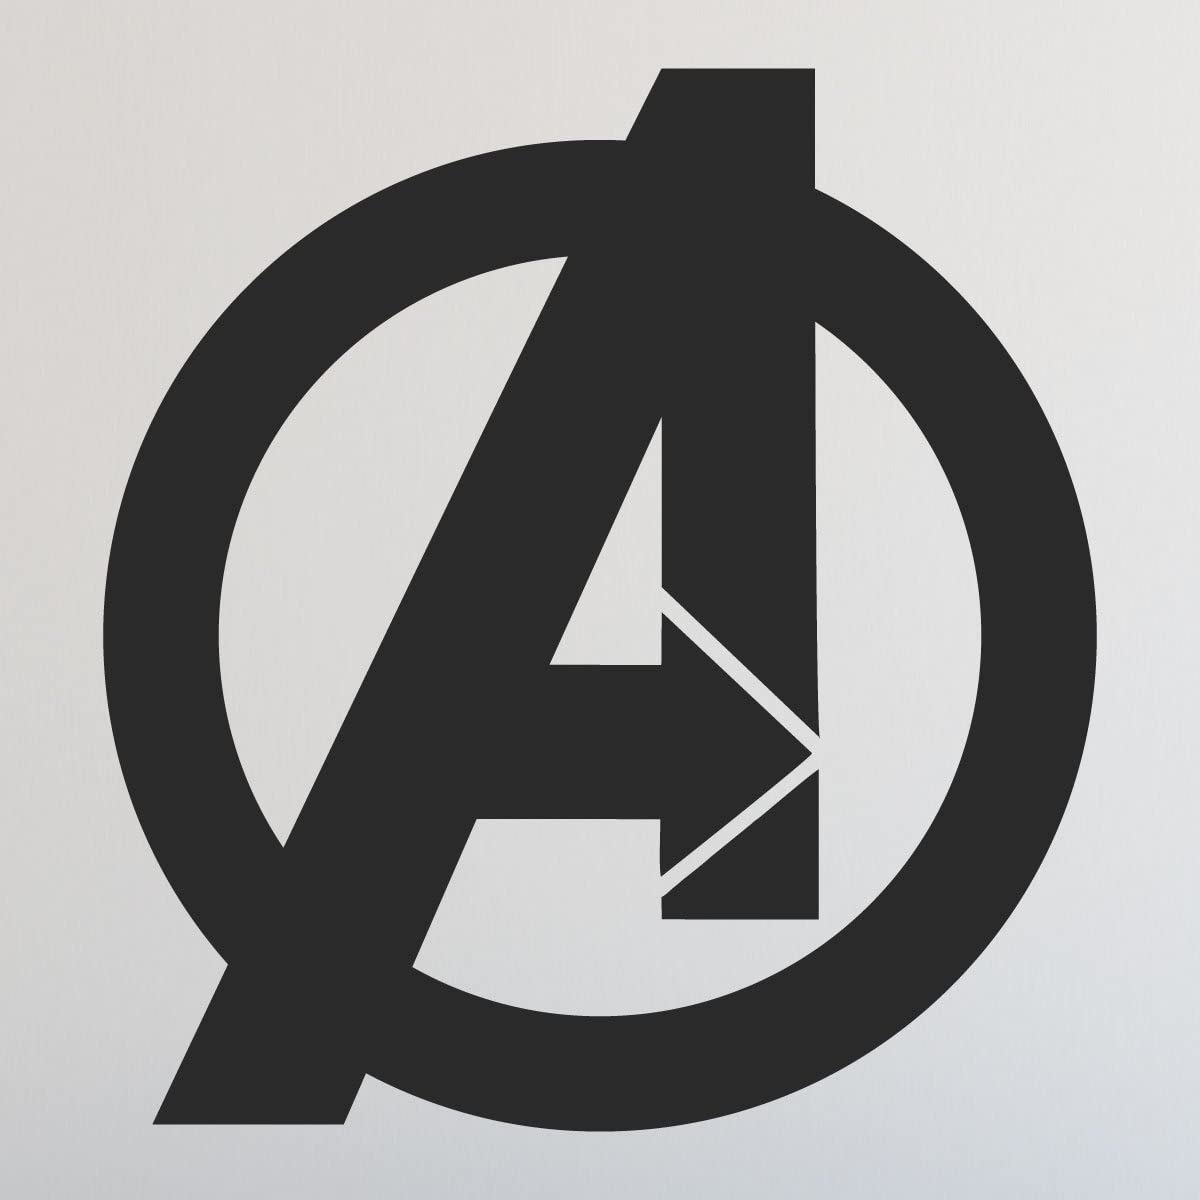 CustomVinylDecor Avengers Logo | Home Decor Vinyl Sticker for Bedroom, Playroom, Or Laptop | Small and Large Sizes | Black, Red, Blue, Brown, Green, Gold